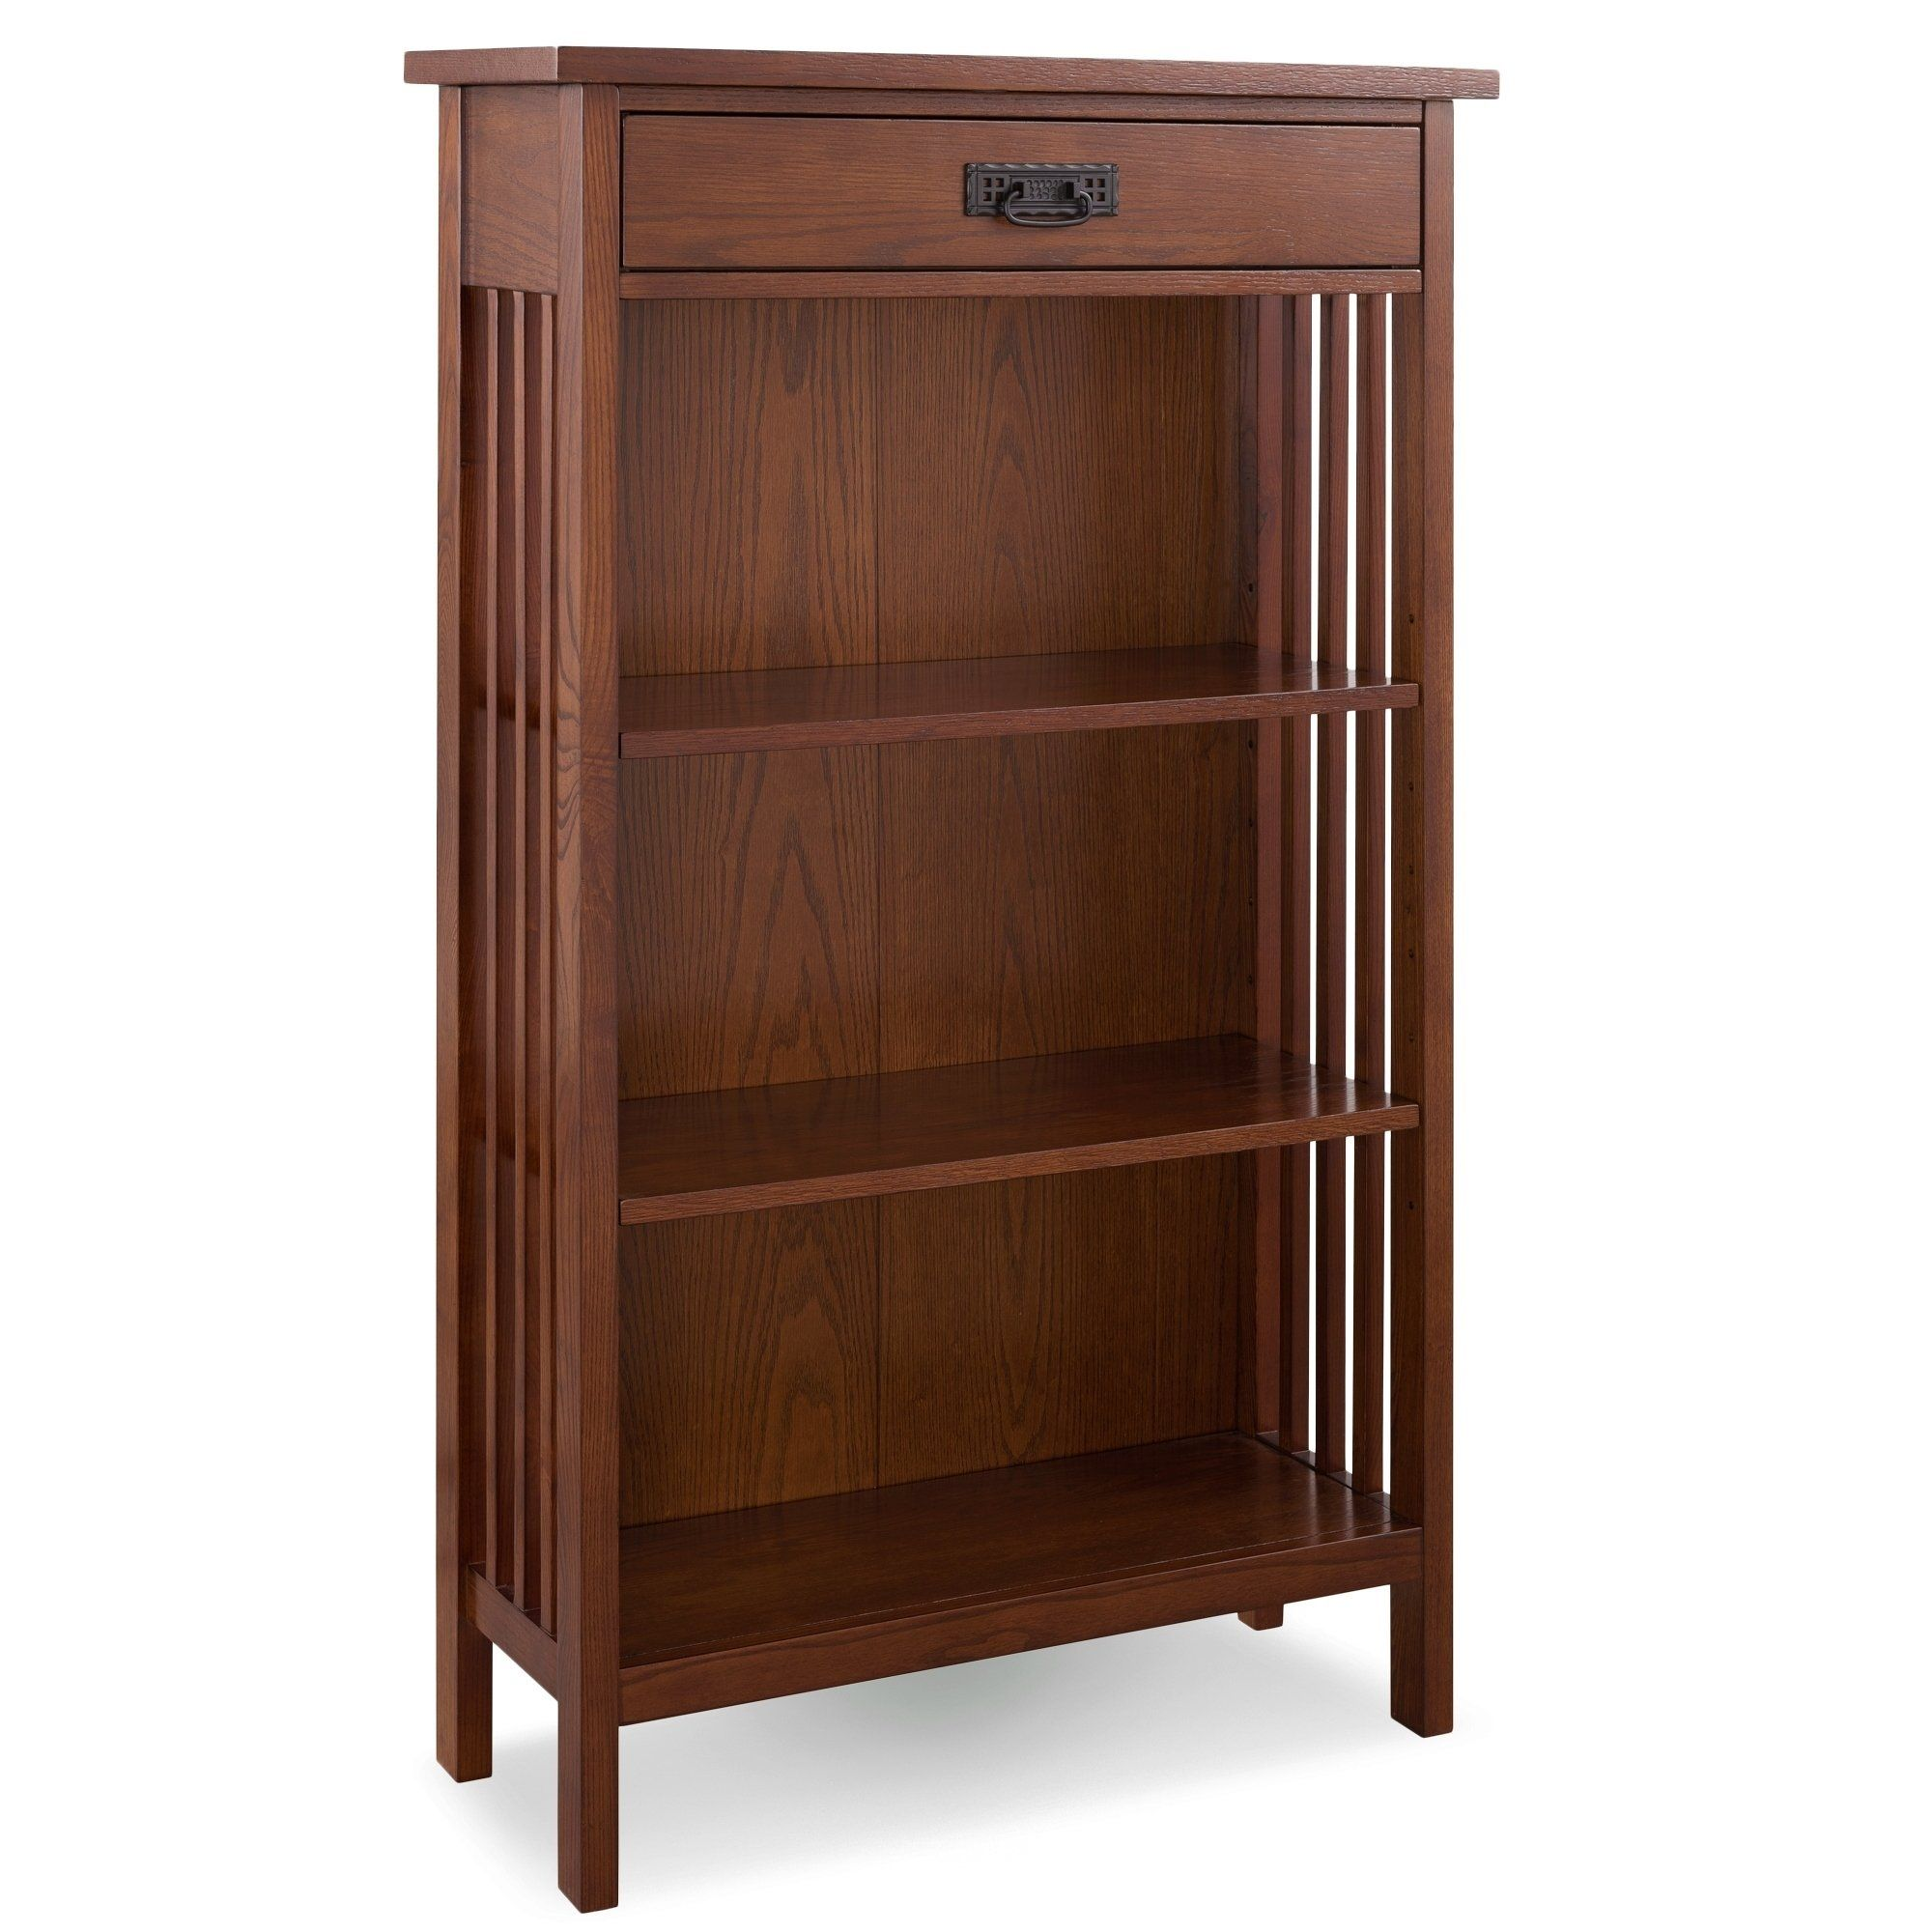 Mission Oak Slatted Mantel Height 3 Shelf Bookcase With Drawer Storage By Leick Home Brown Kd Furnishings Bookcase With Drawers Oak Bookcase Bookcase